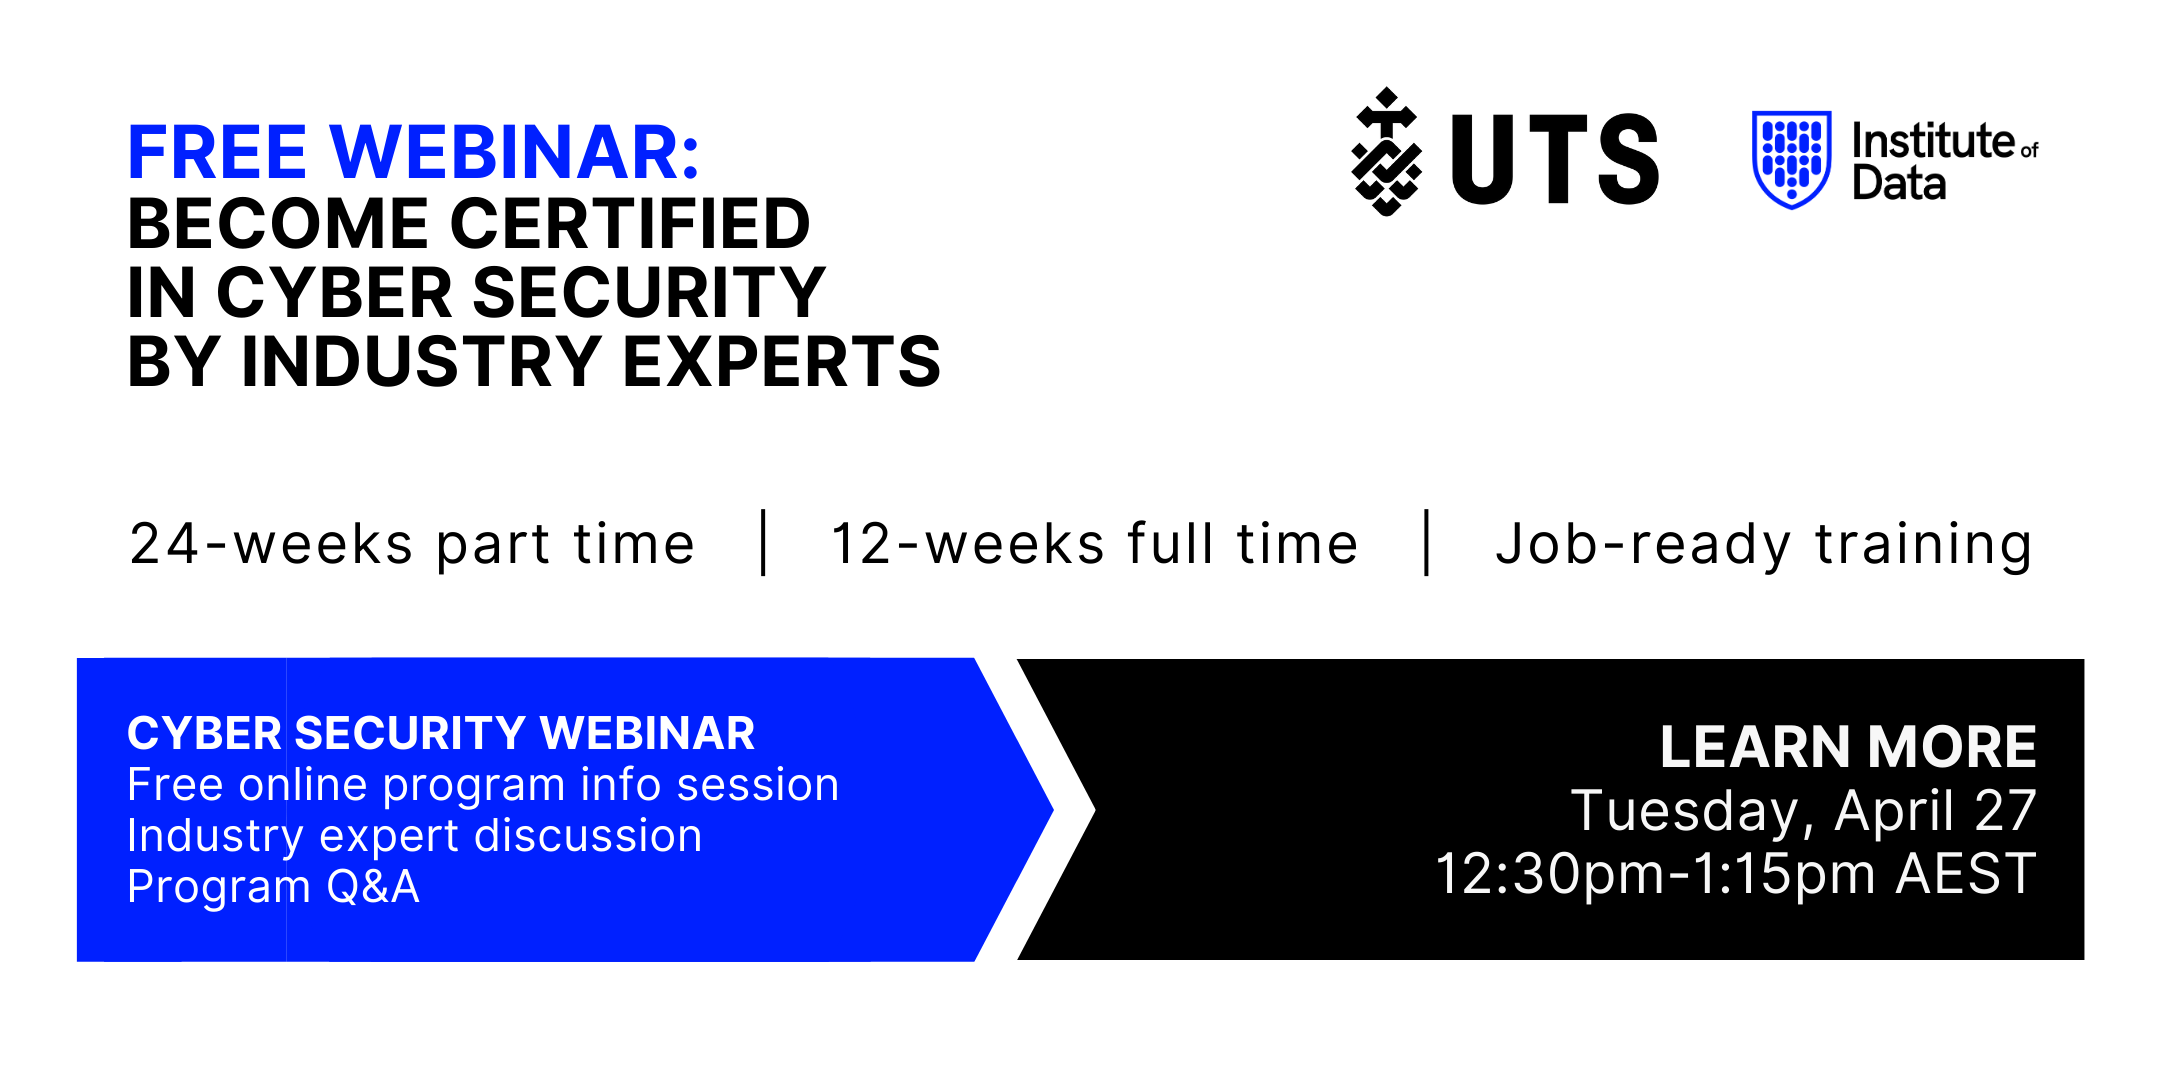 Institute of Data UTS - Cyber Security Program - Online Info Session - April 27 2021